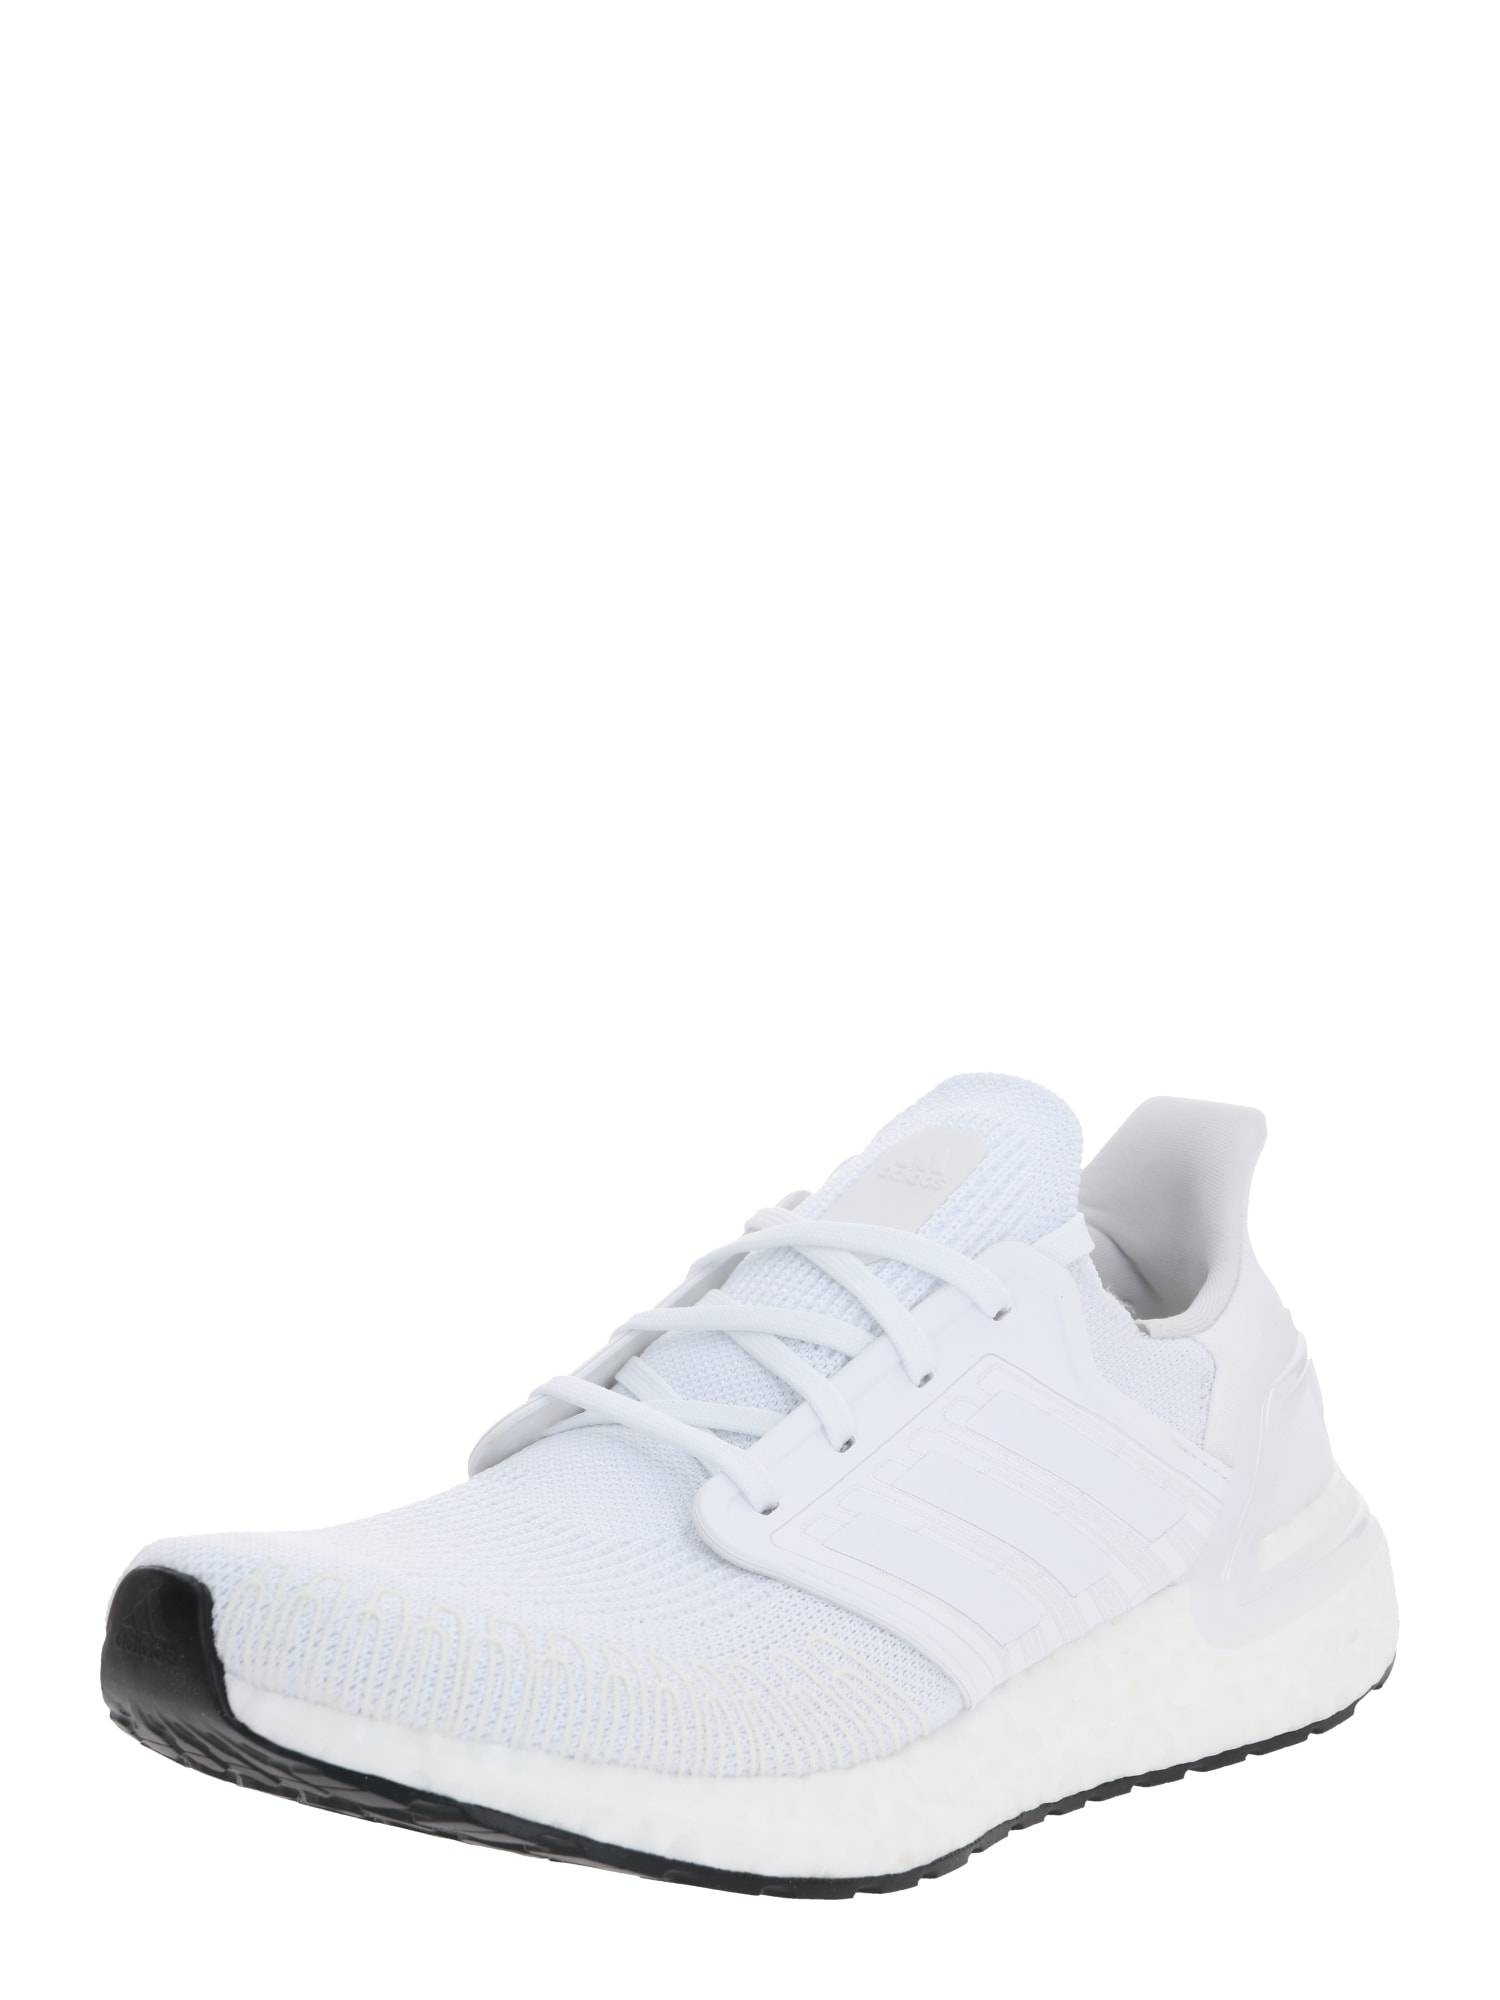 ADIDAS PERFORMANCE Chaussure de course 'Ultraboost 20'  - Blanc - Taille: 42.5-43 - male